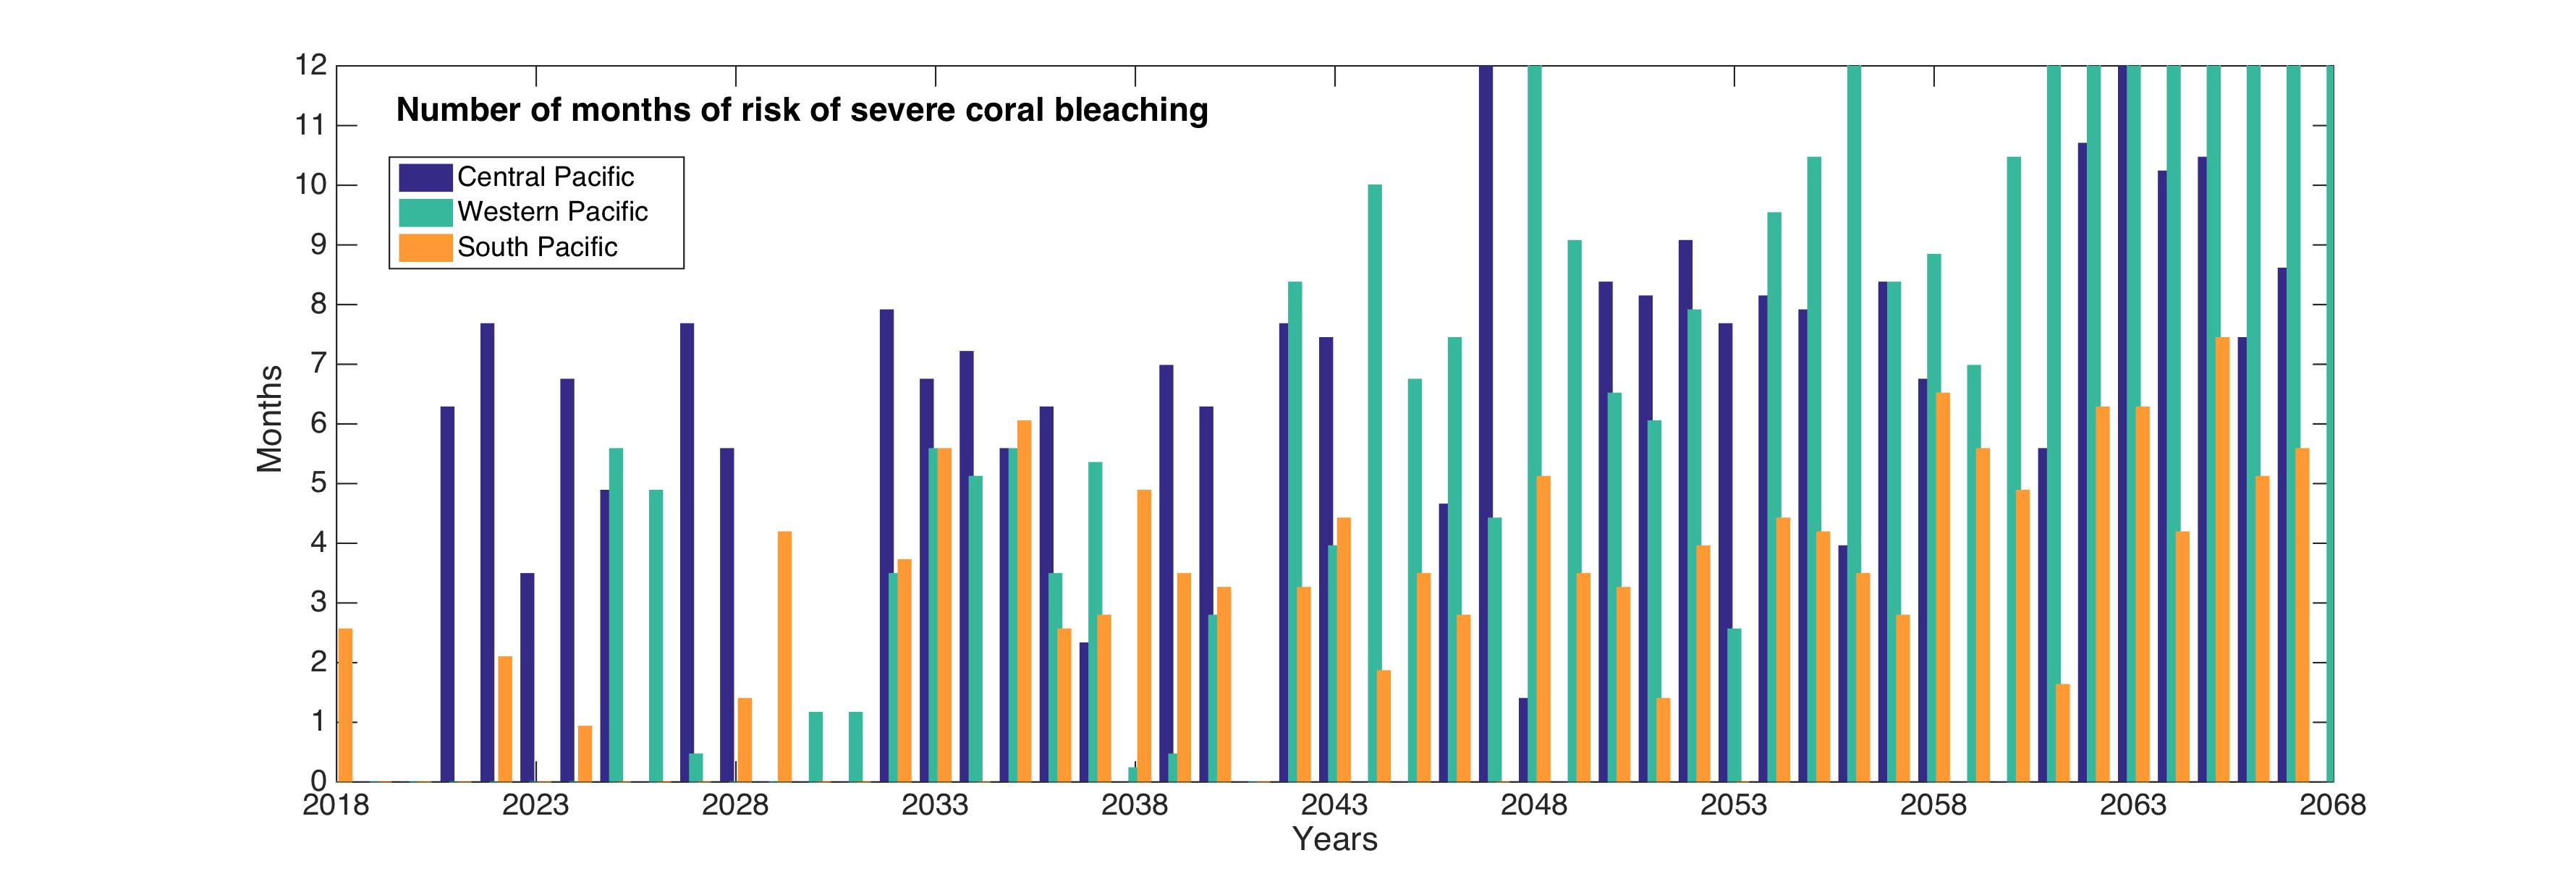 Number of months of risk of severe coral bleaching chart